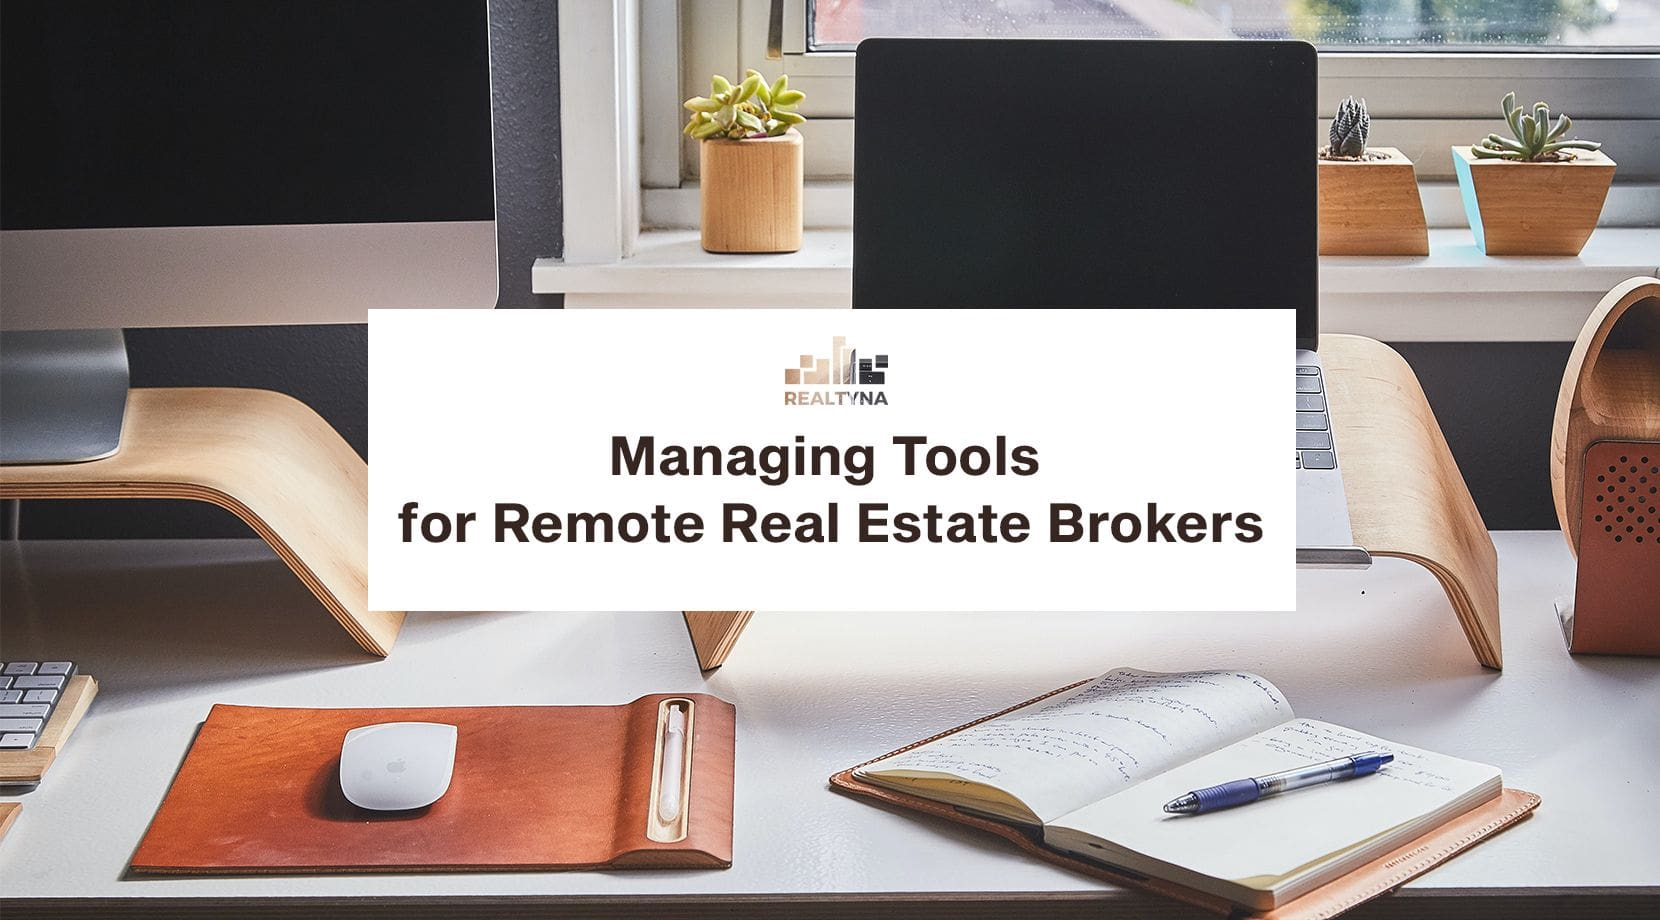 Managing Tools for Remote Real Estate Brokers